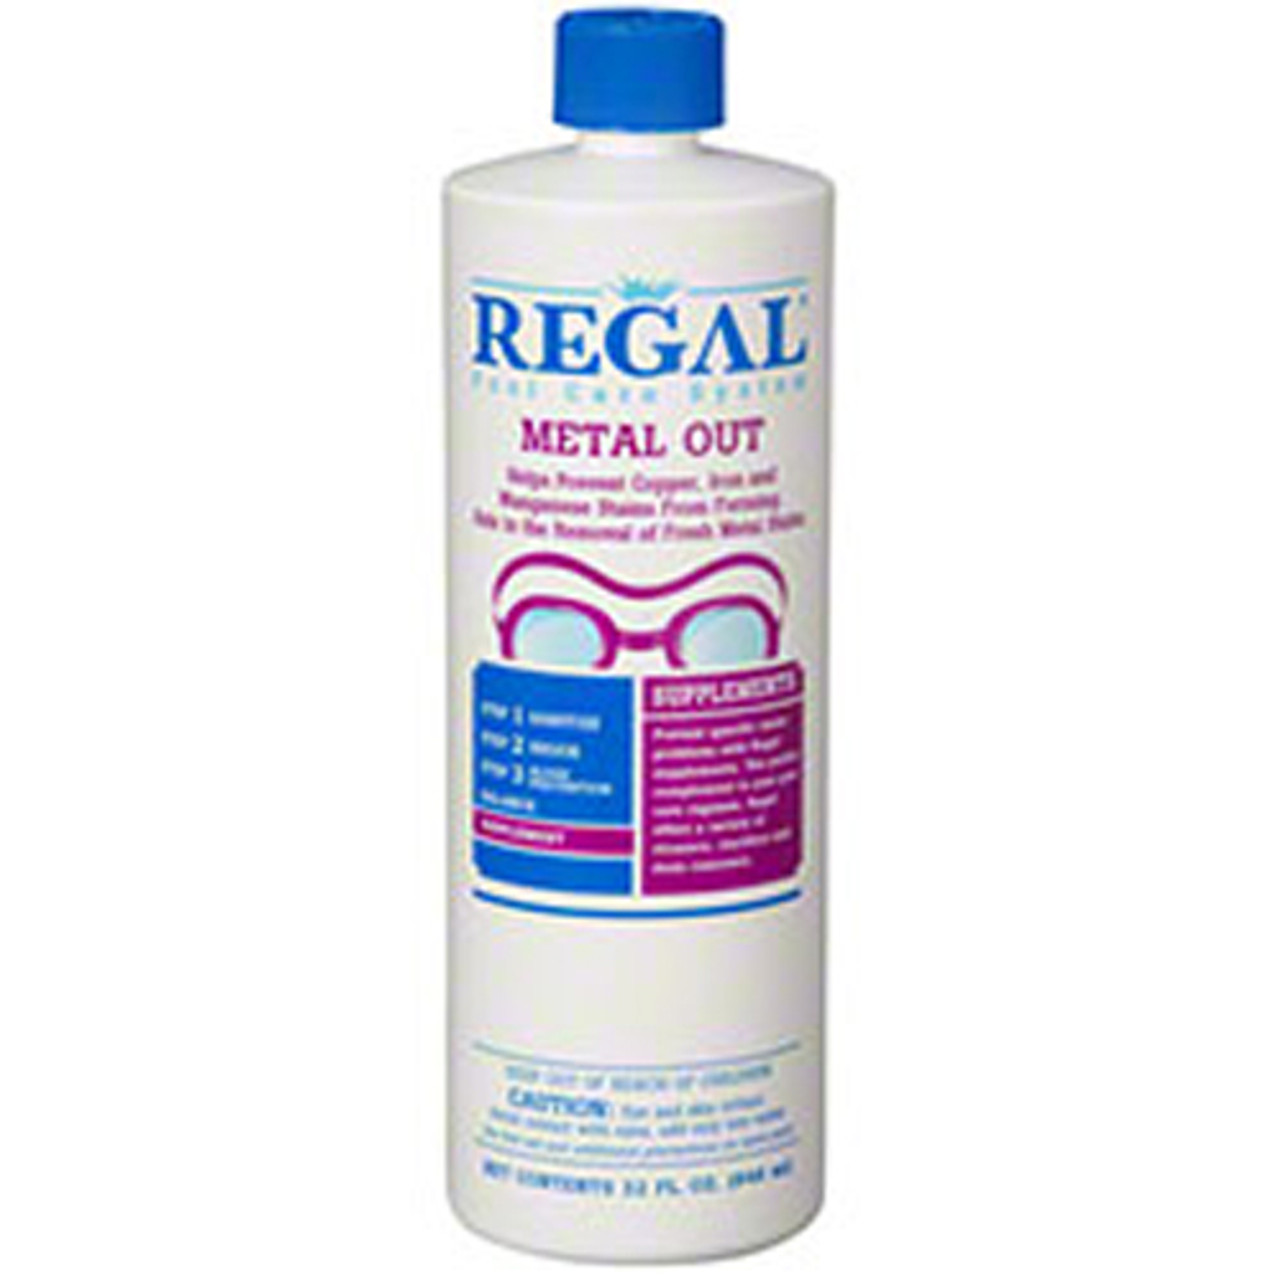 Regal Qt Metal Out Free Shipping 50 2720